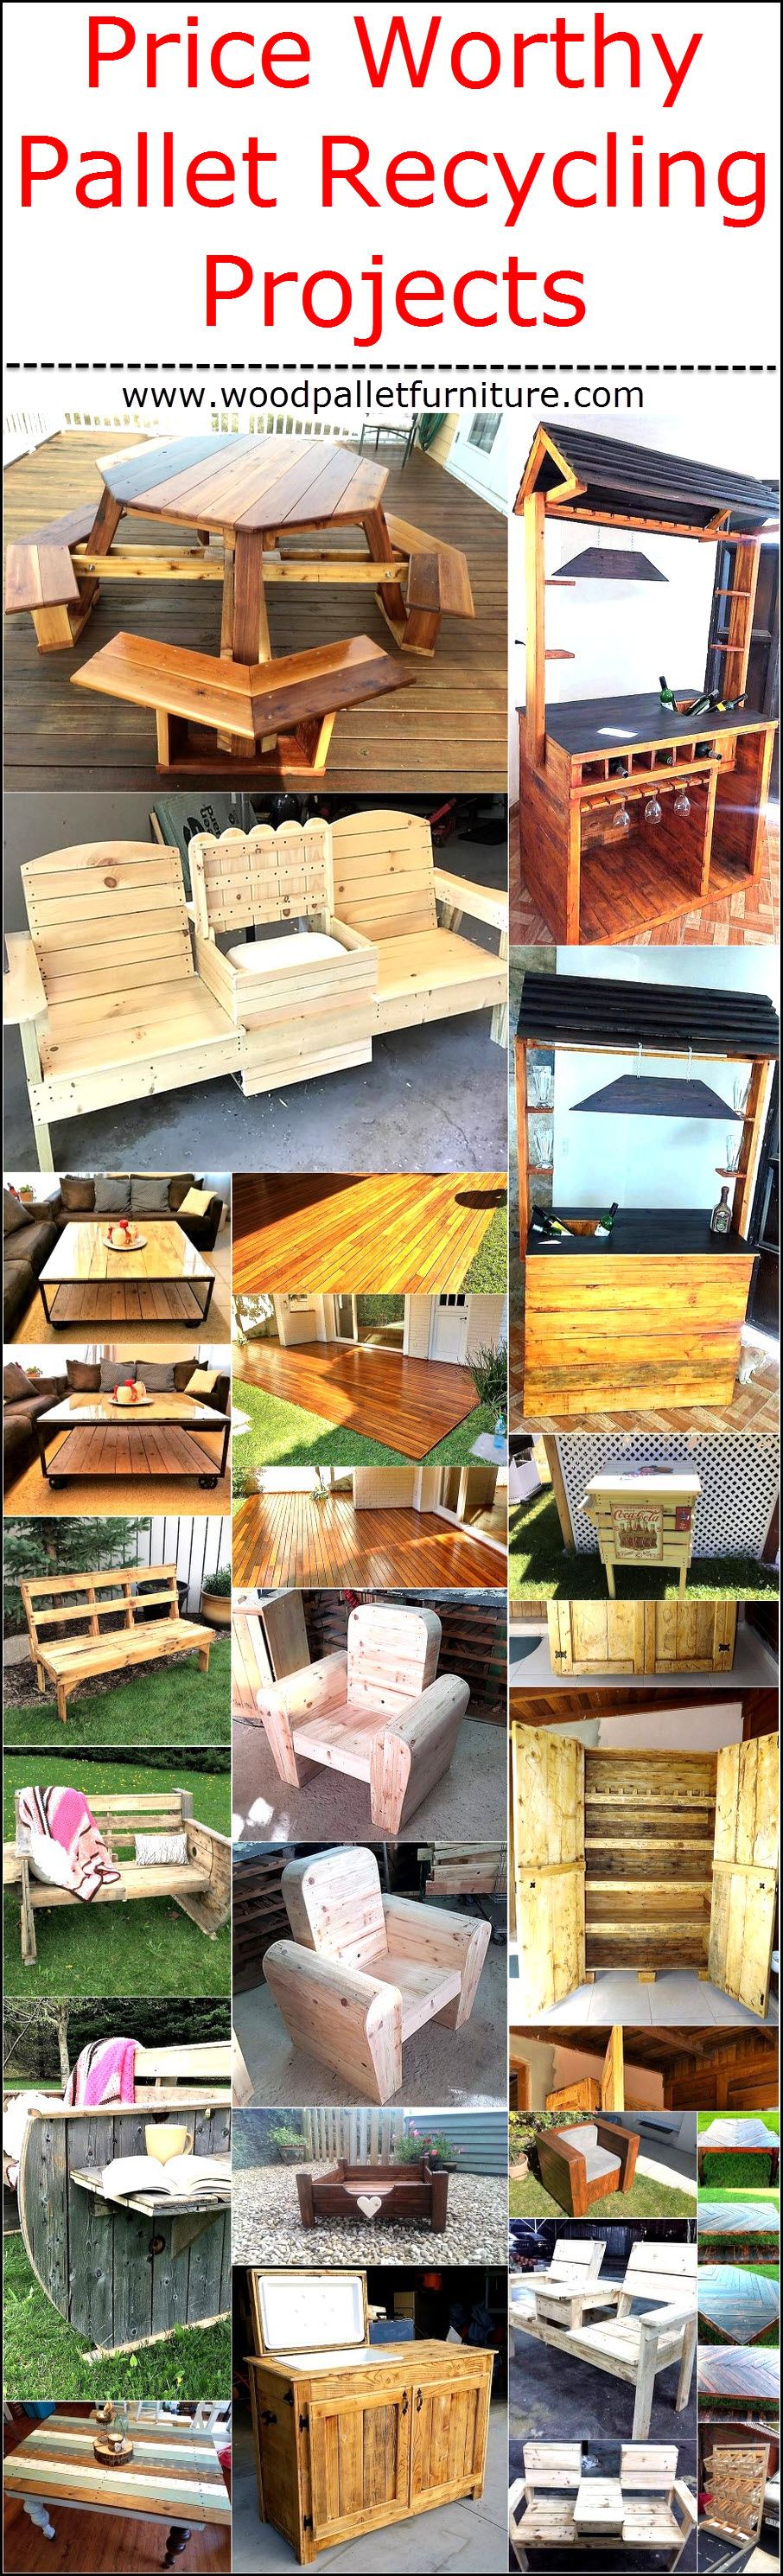 price-worthy-pallet-recycling-projects